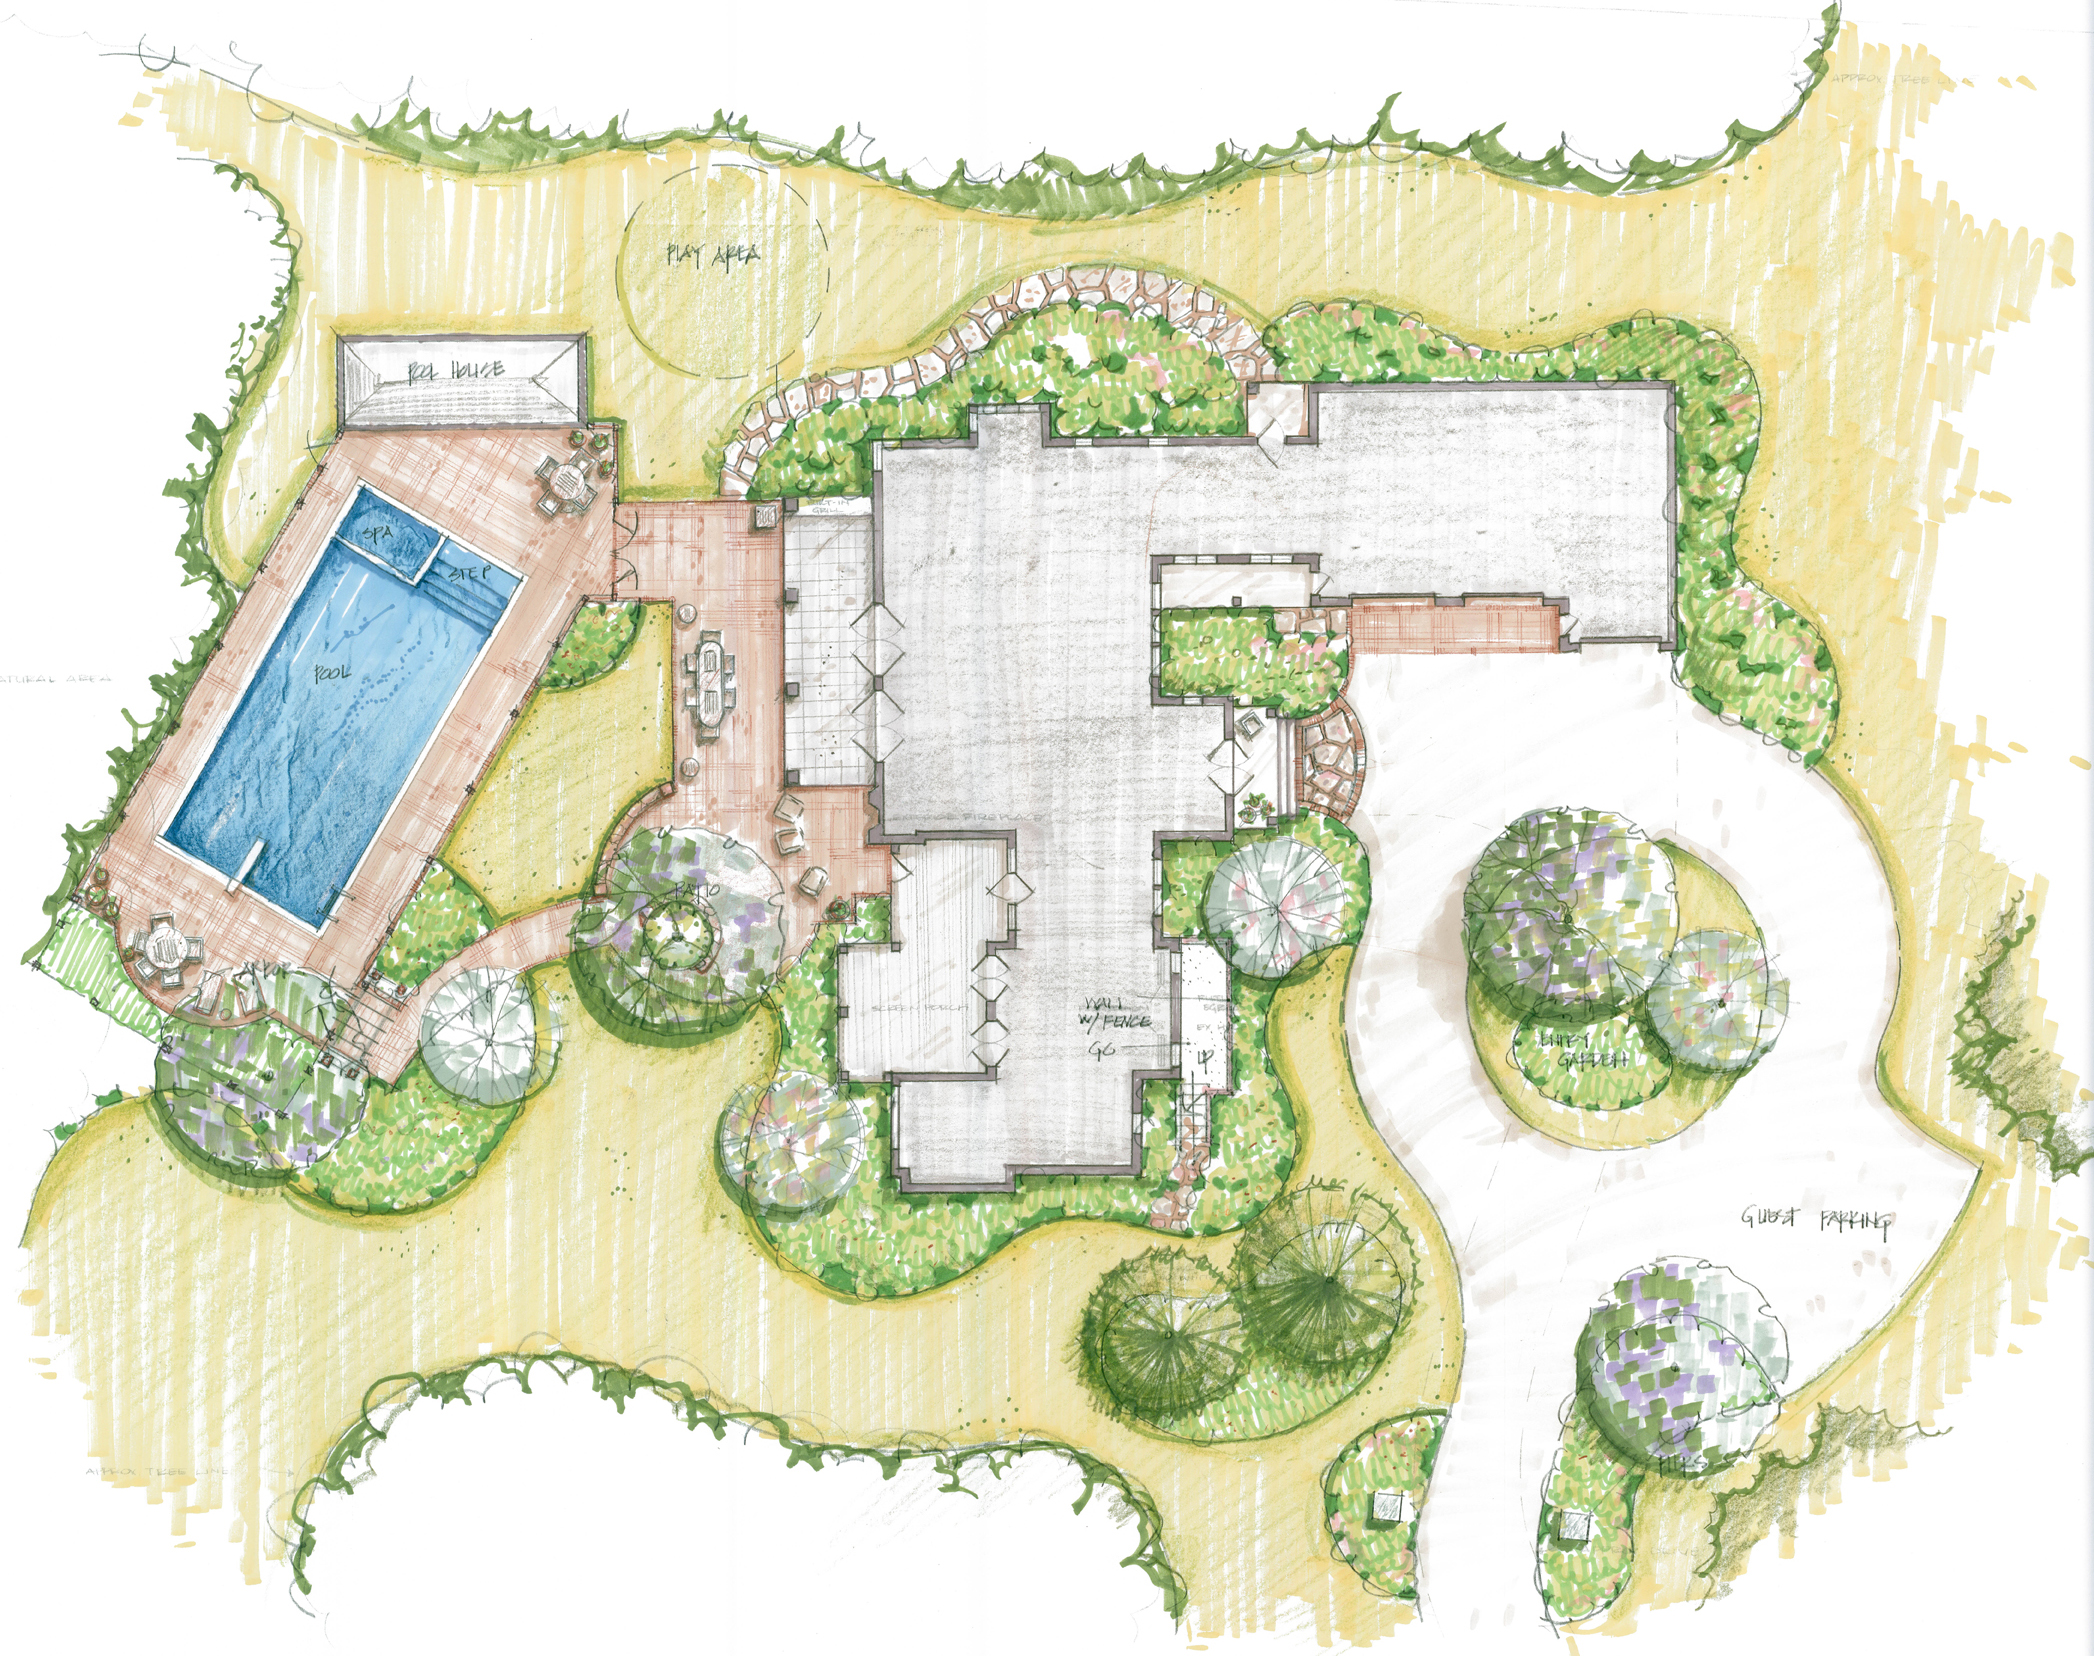 5 Simple Reasons To Plan Your Landscape Design Landscape